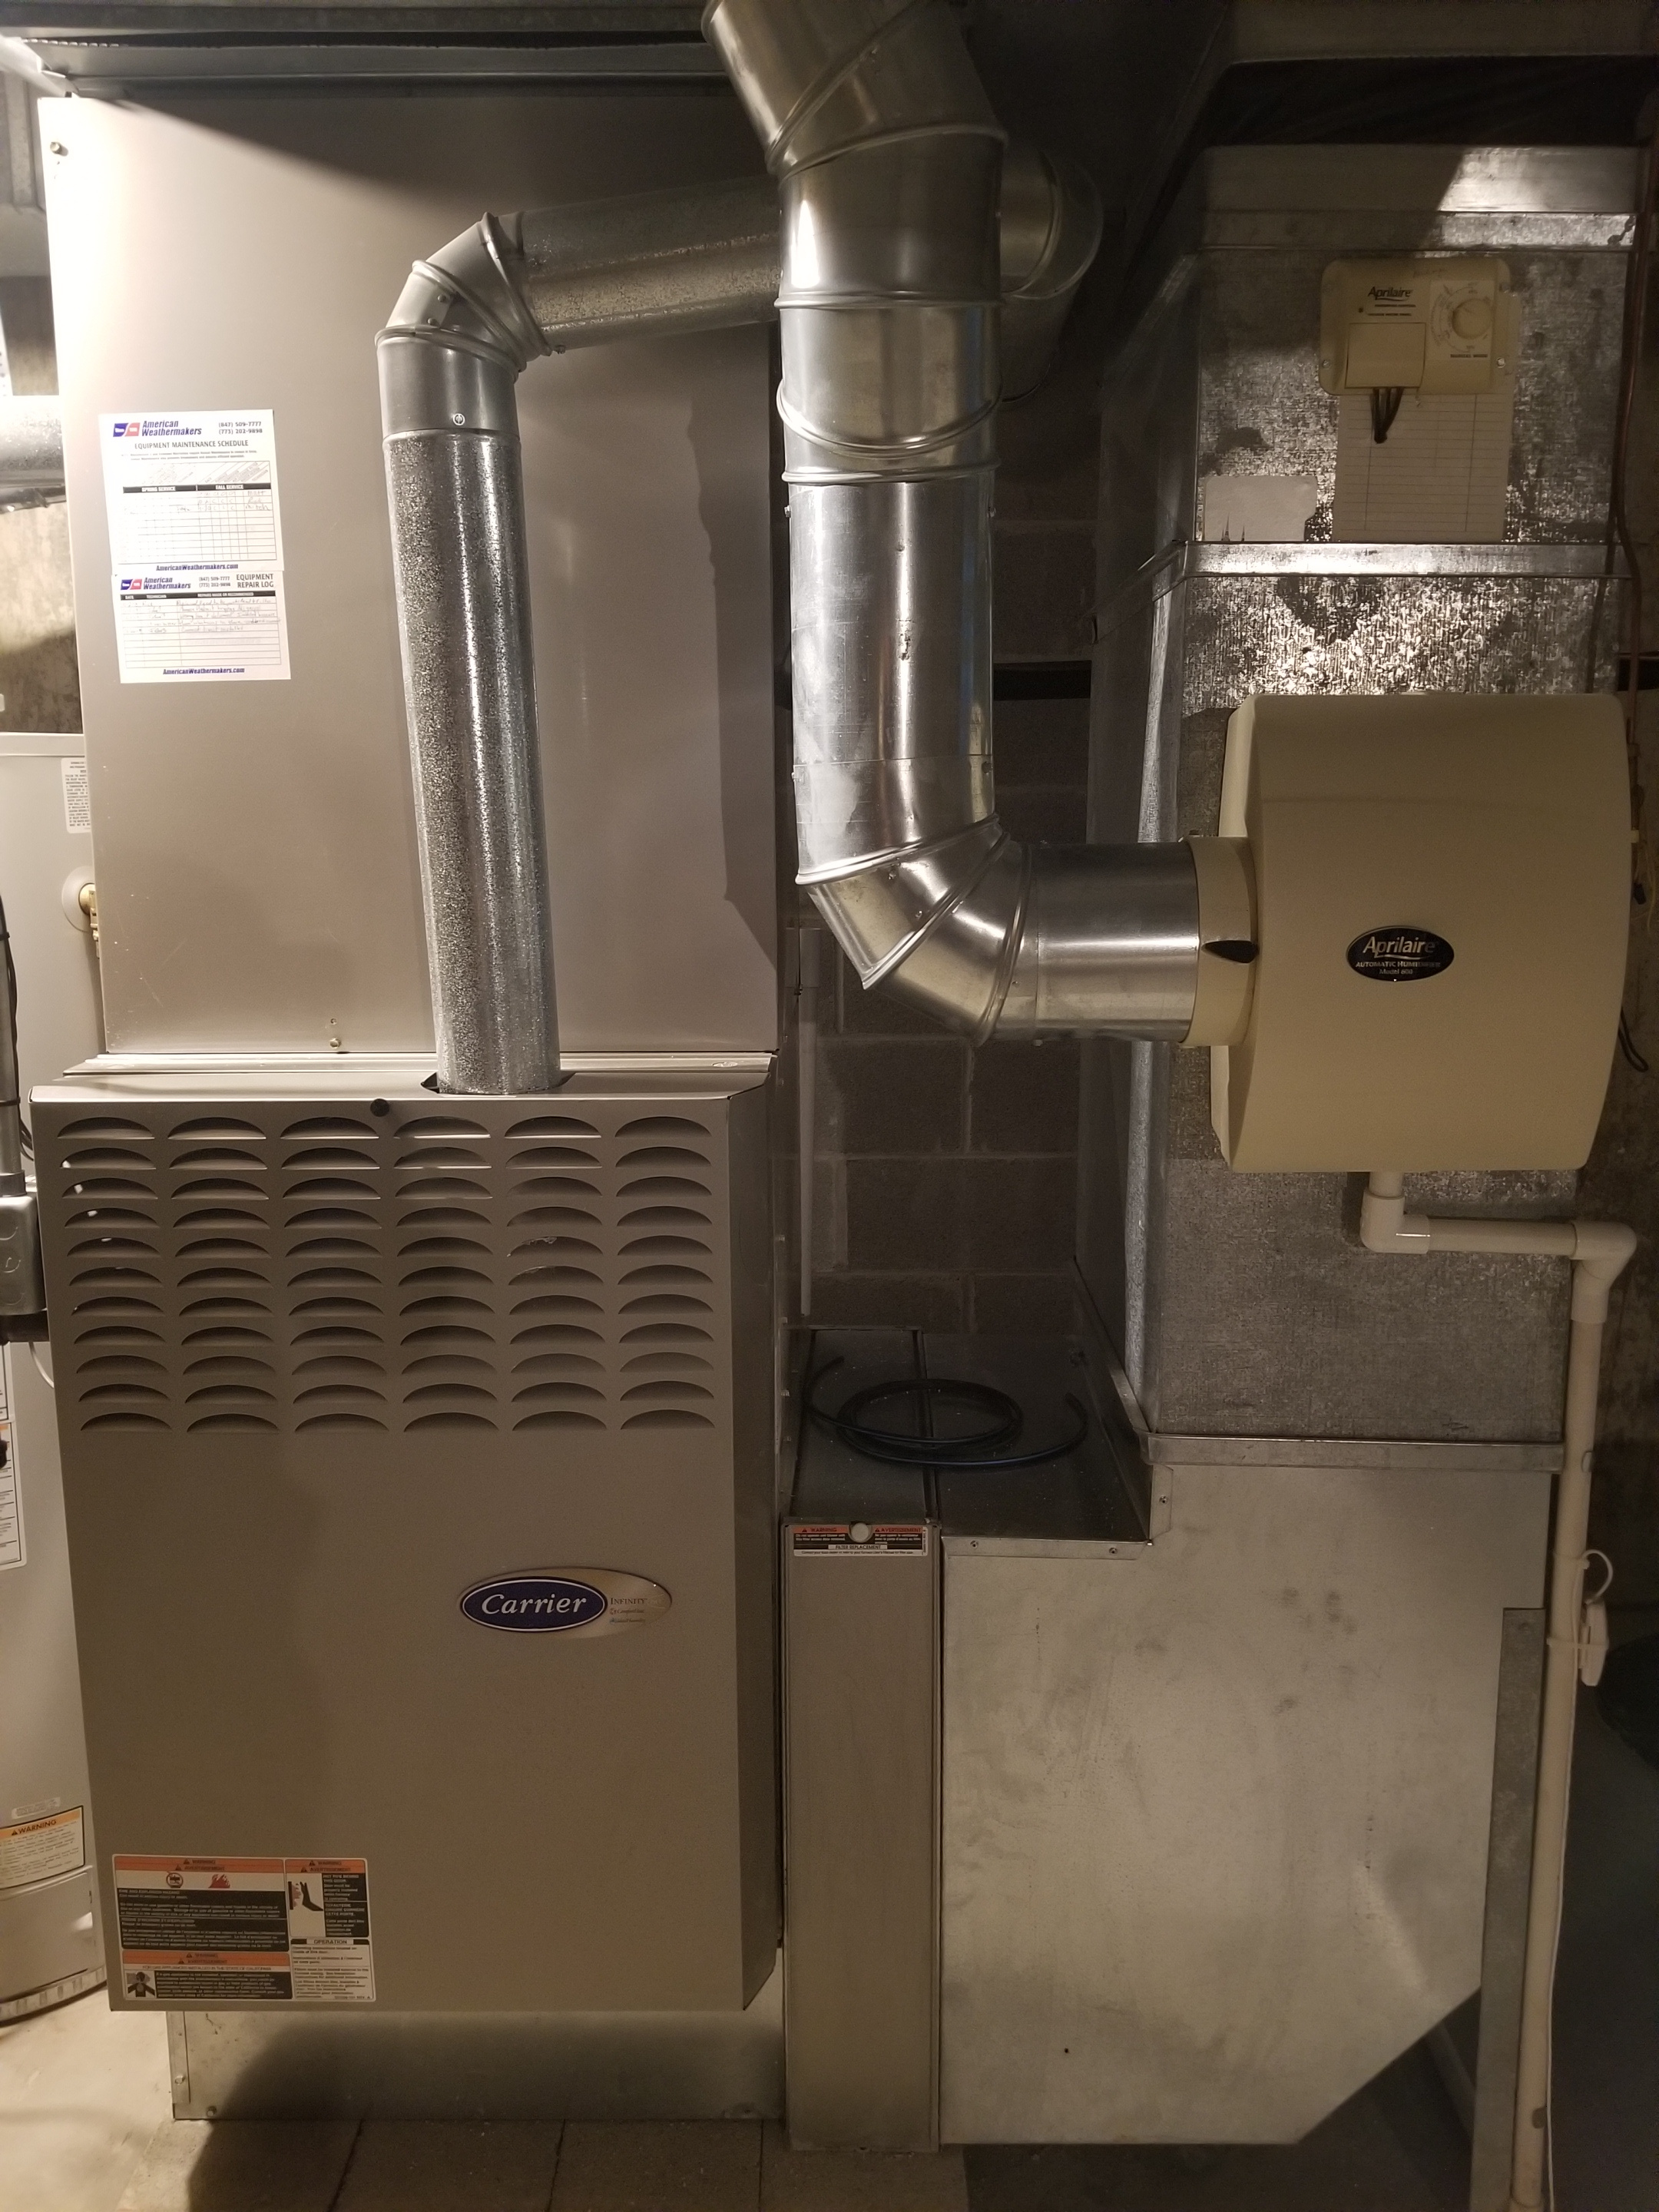 Repaired the Carrier furnace and Aprilaire humidifier and made adjustments to improve the overall efficiency and life expectancy of the equipment